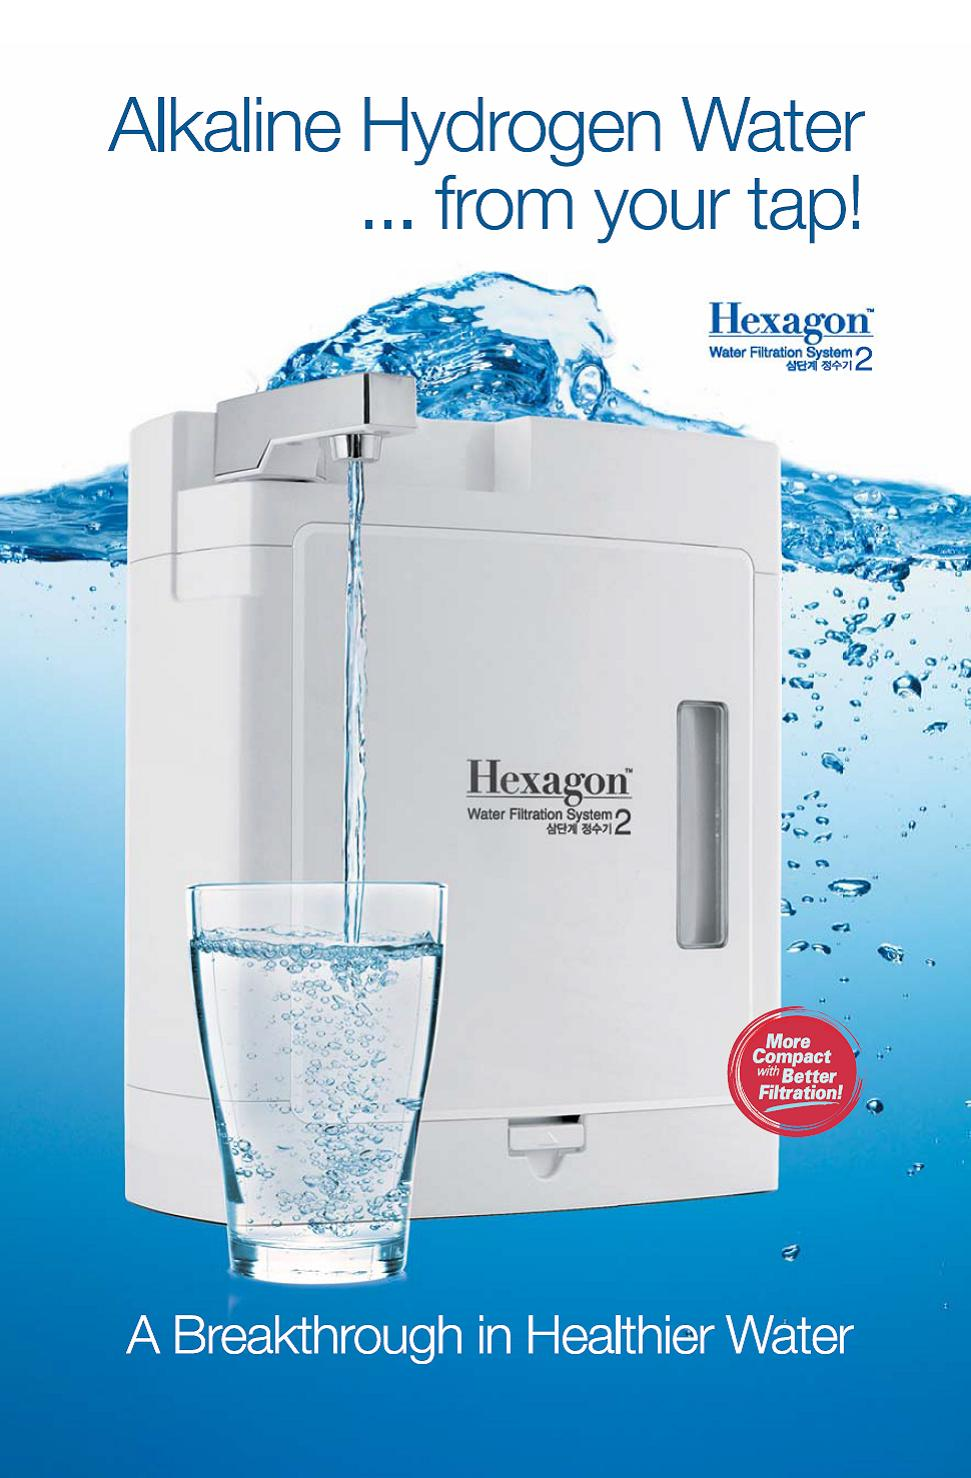 Water Education About The Hexagon Alkaline Water System